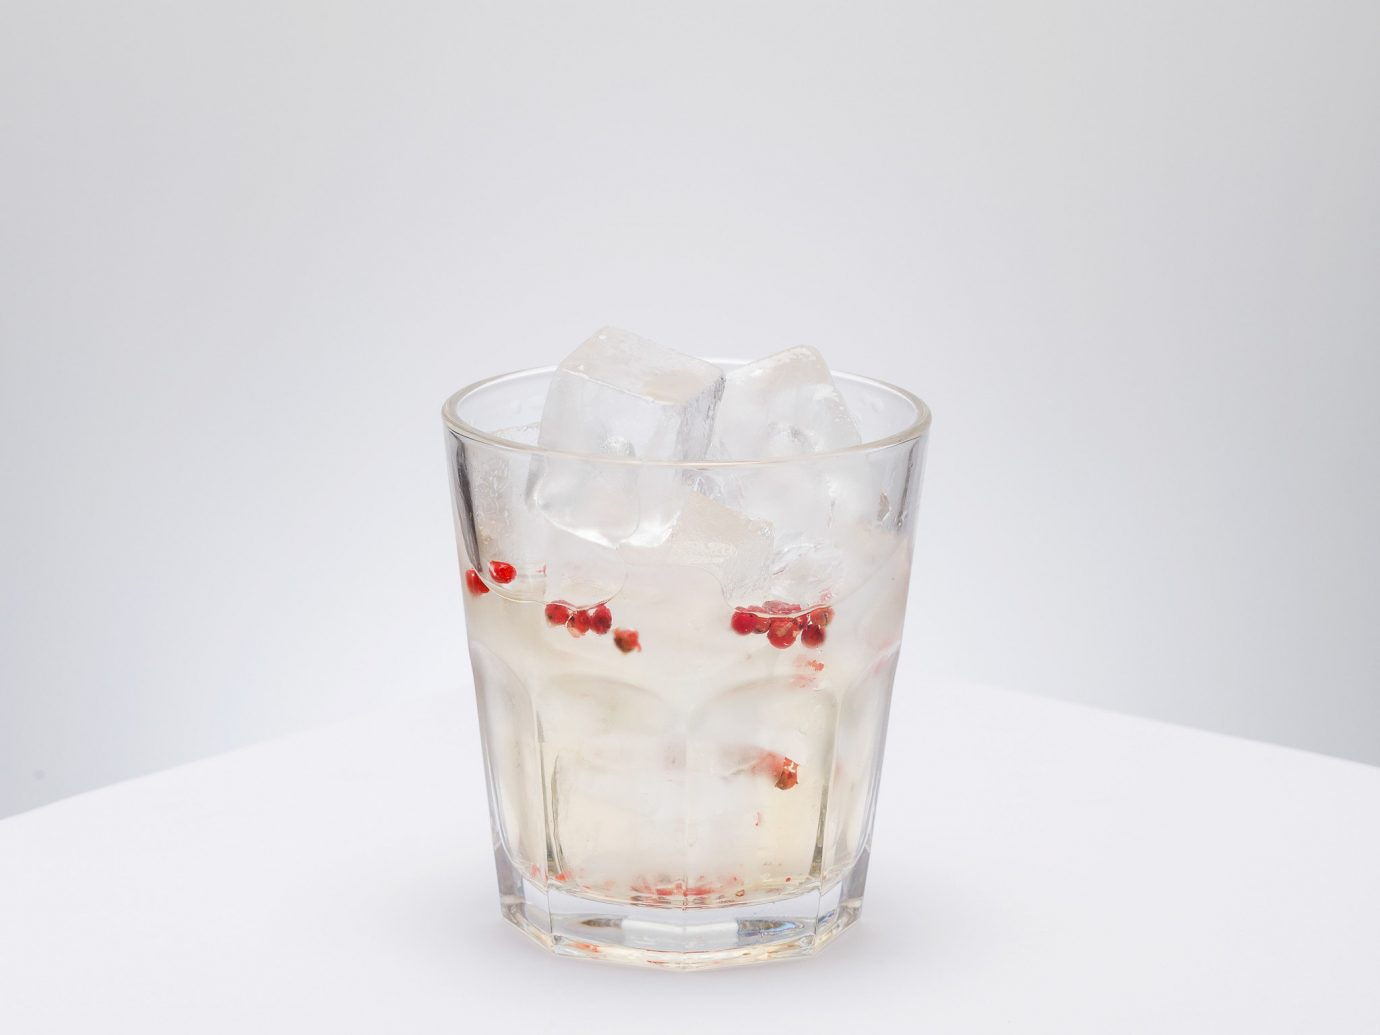 Offbeat Trip Ideas cup white Drink old fashioned glass glass highball glass tumbler beverage